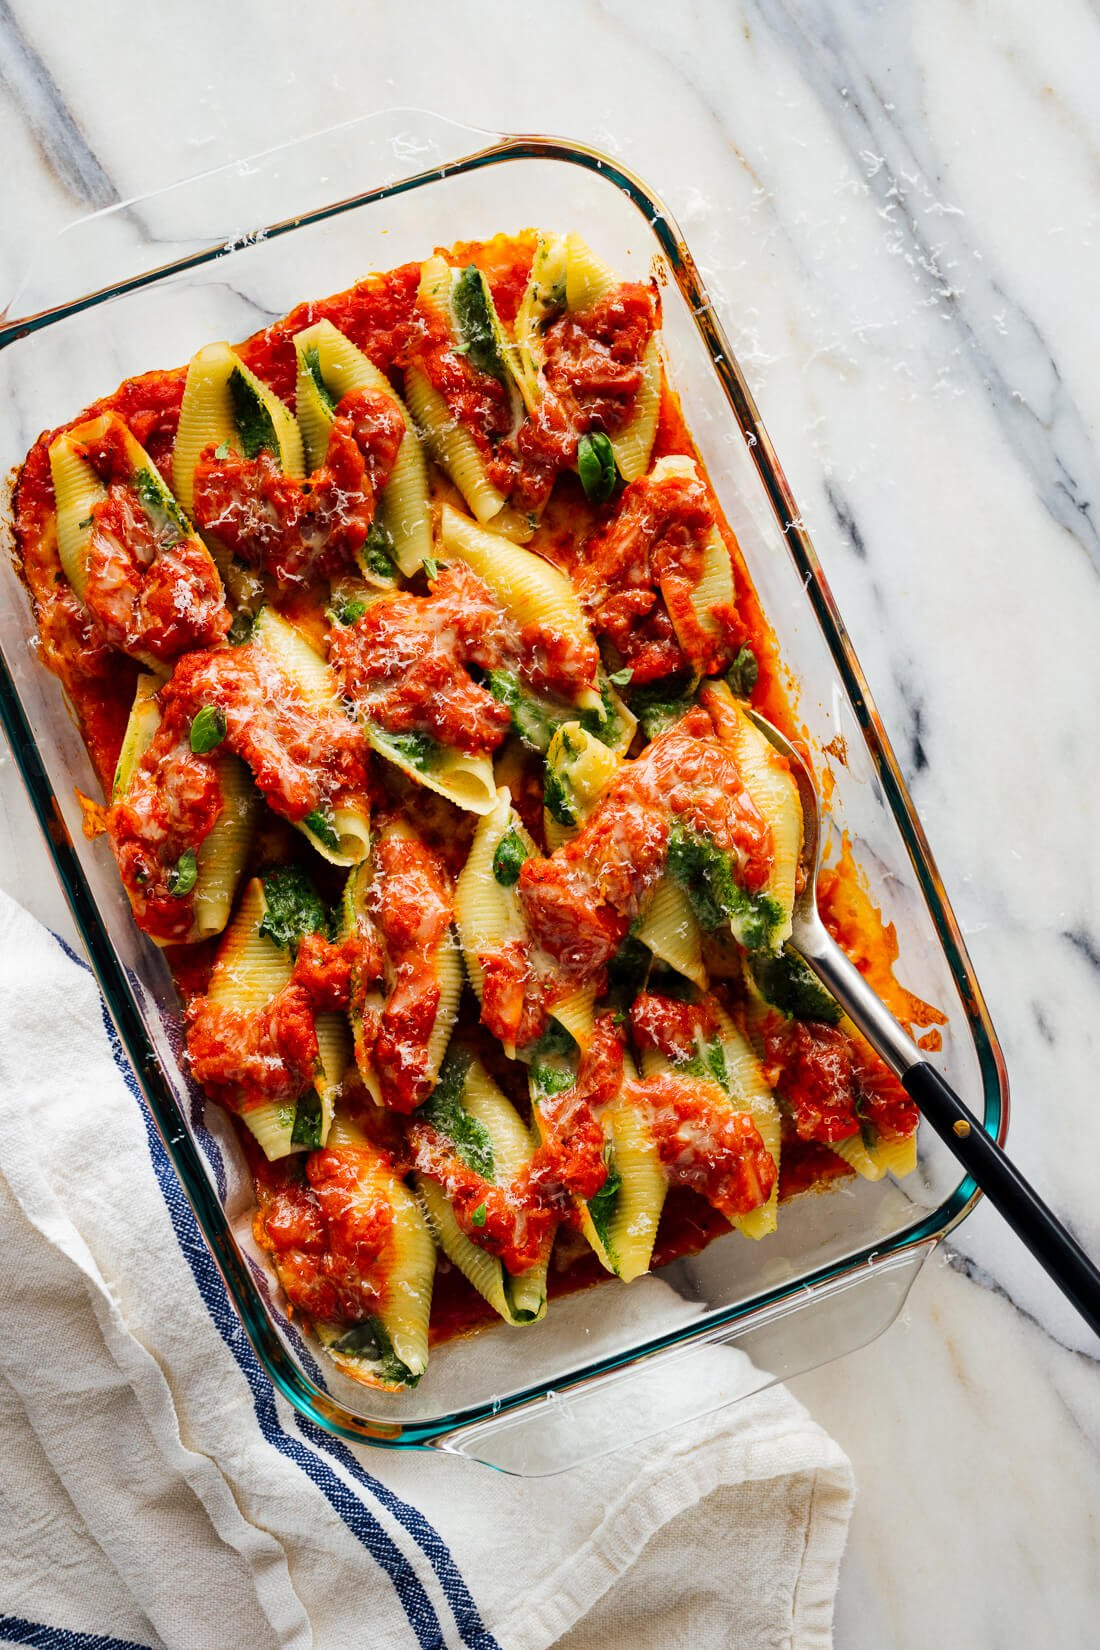 classic stuffed shells recipe